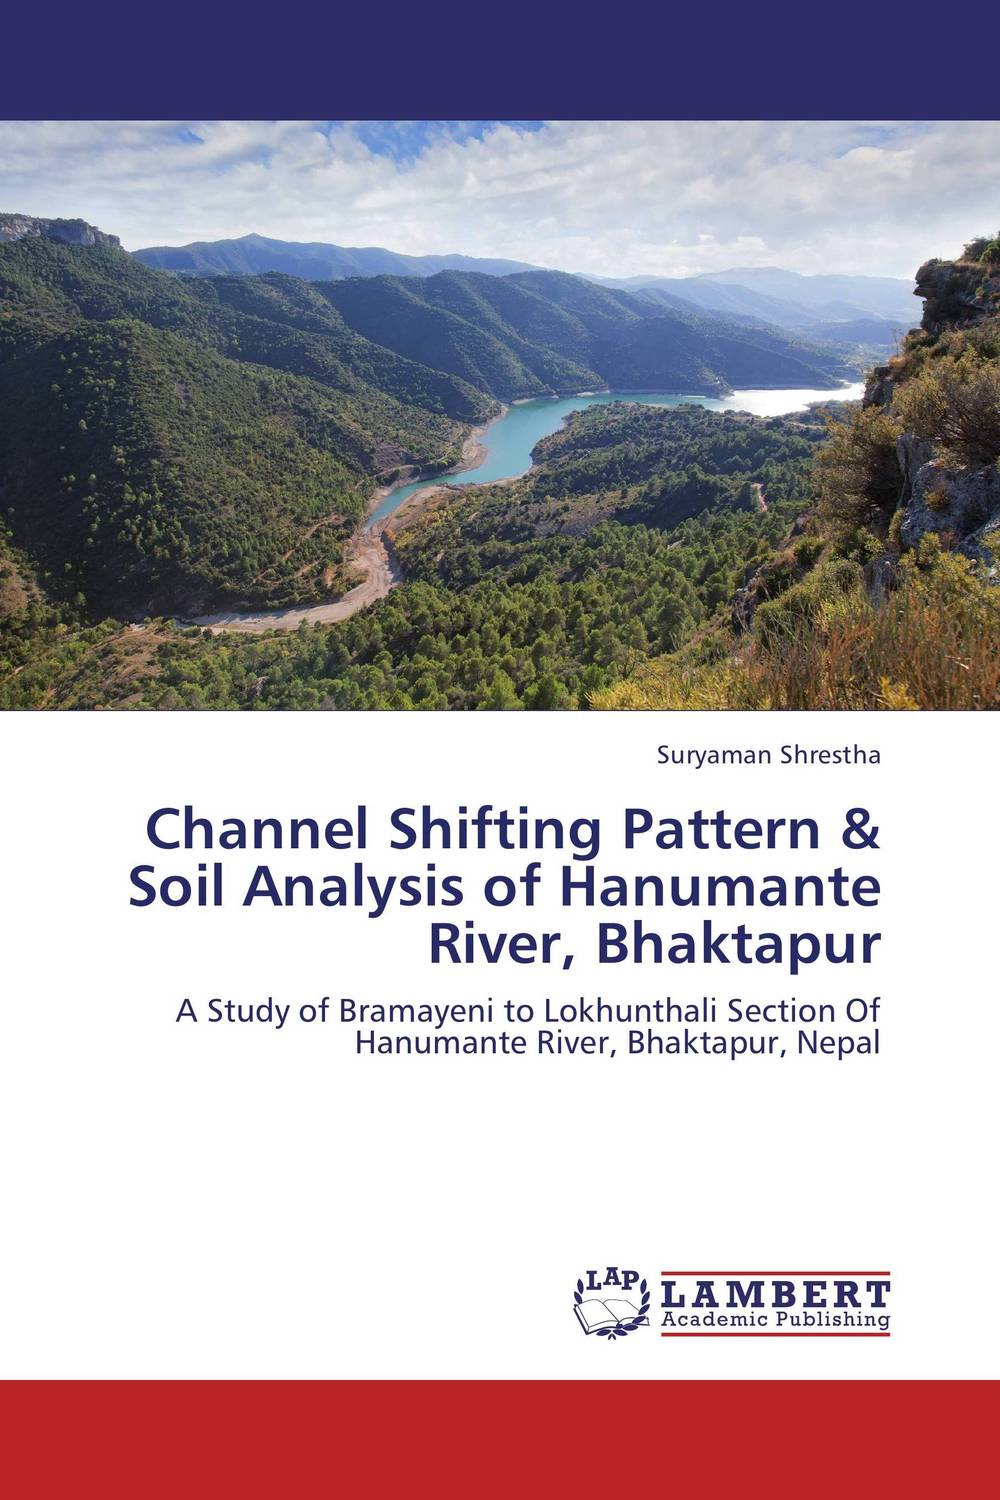 Channel Shifting Pattern & Soil Analysis of Hanumante River, Bhaktapur reassessment of mentha species from river kunhar catchment